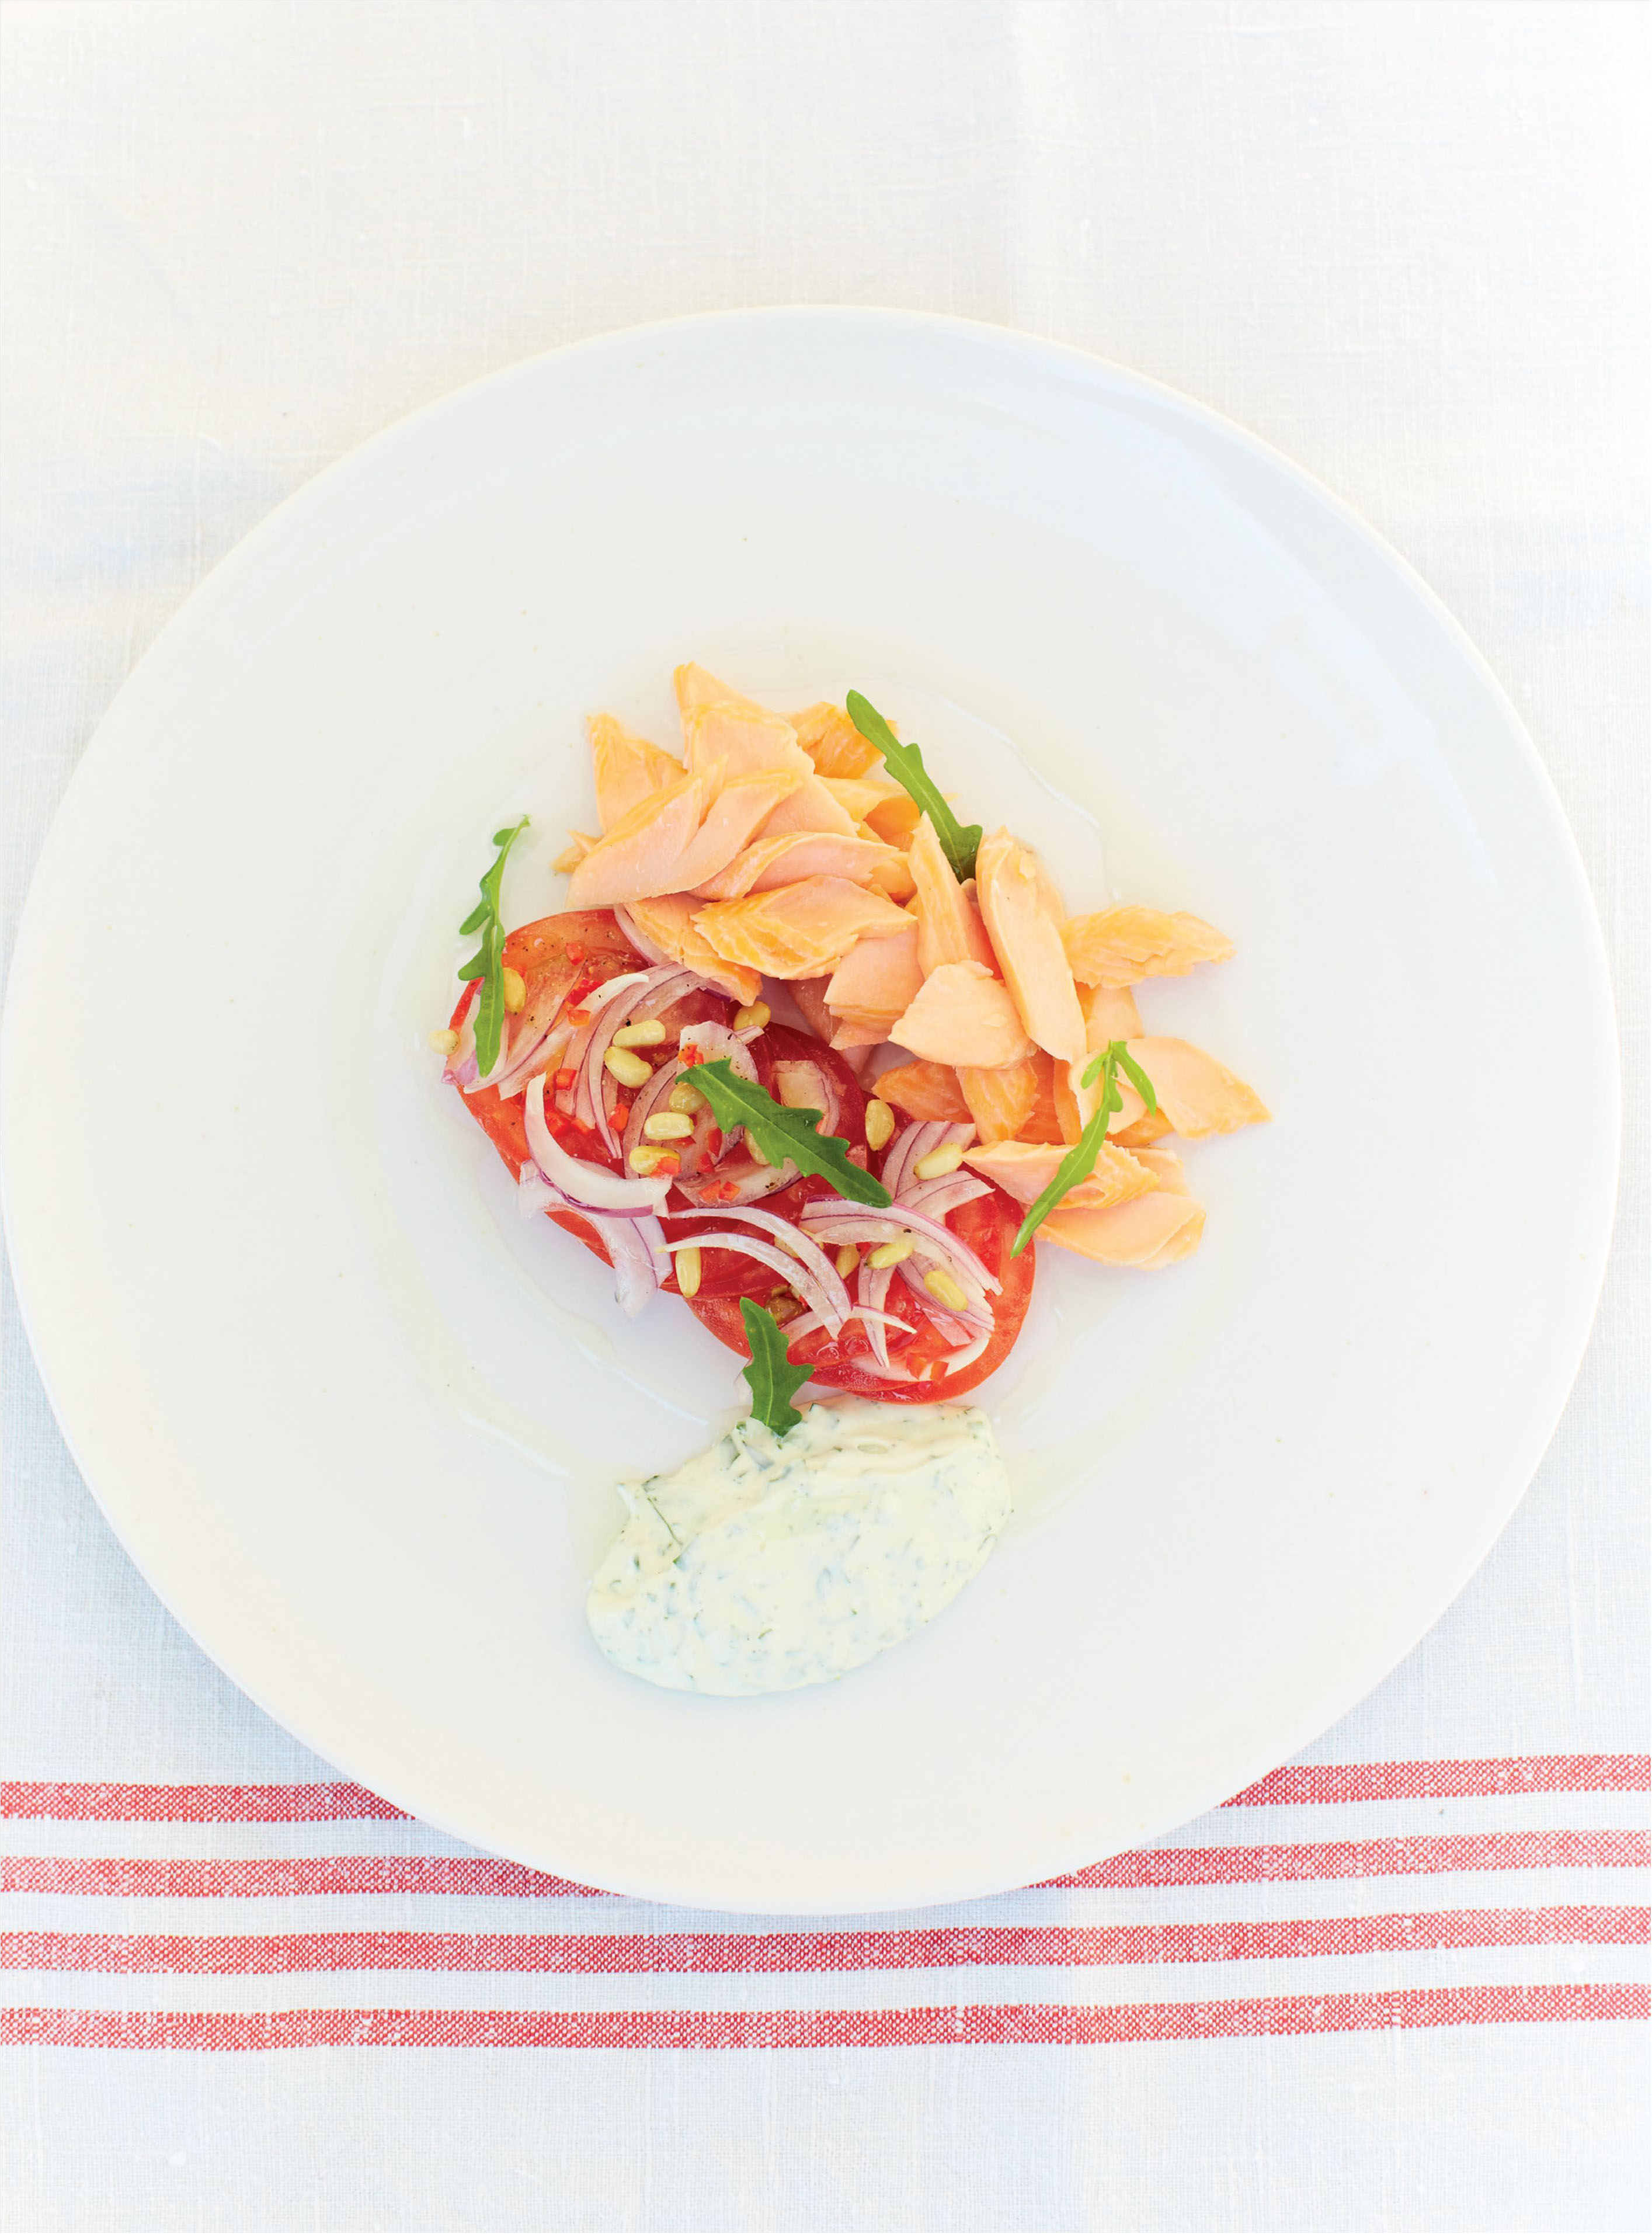 Smoked trout and tomatoes with horseradish and rocket mayonnaise